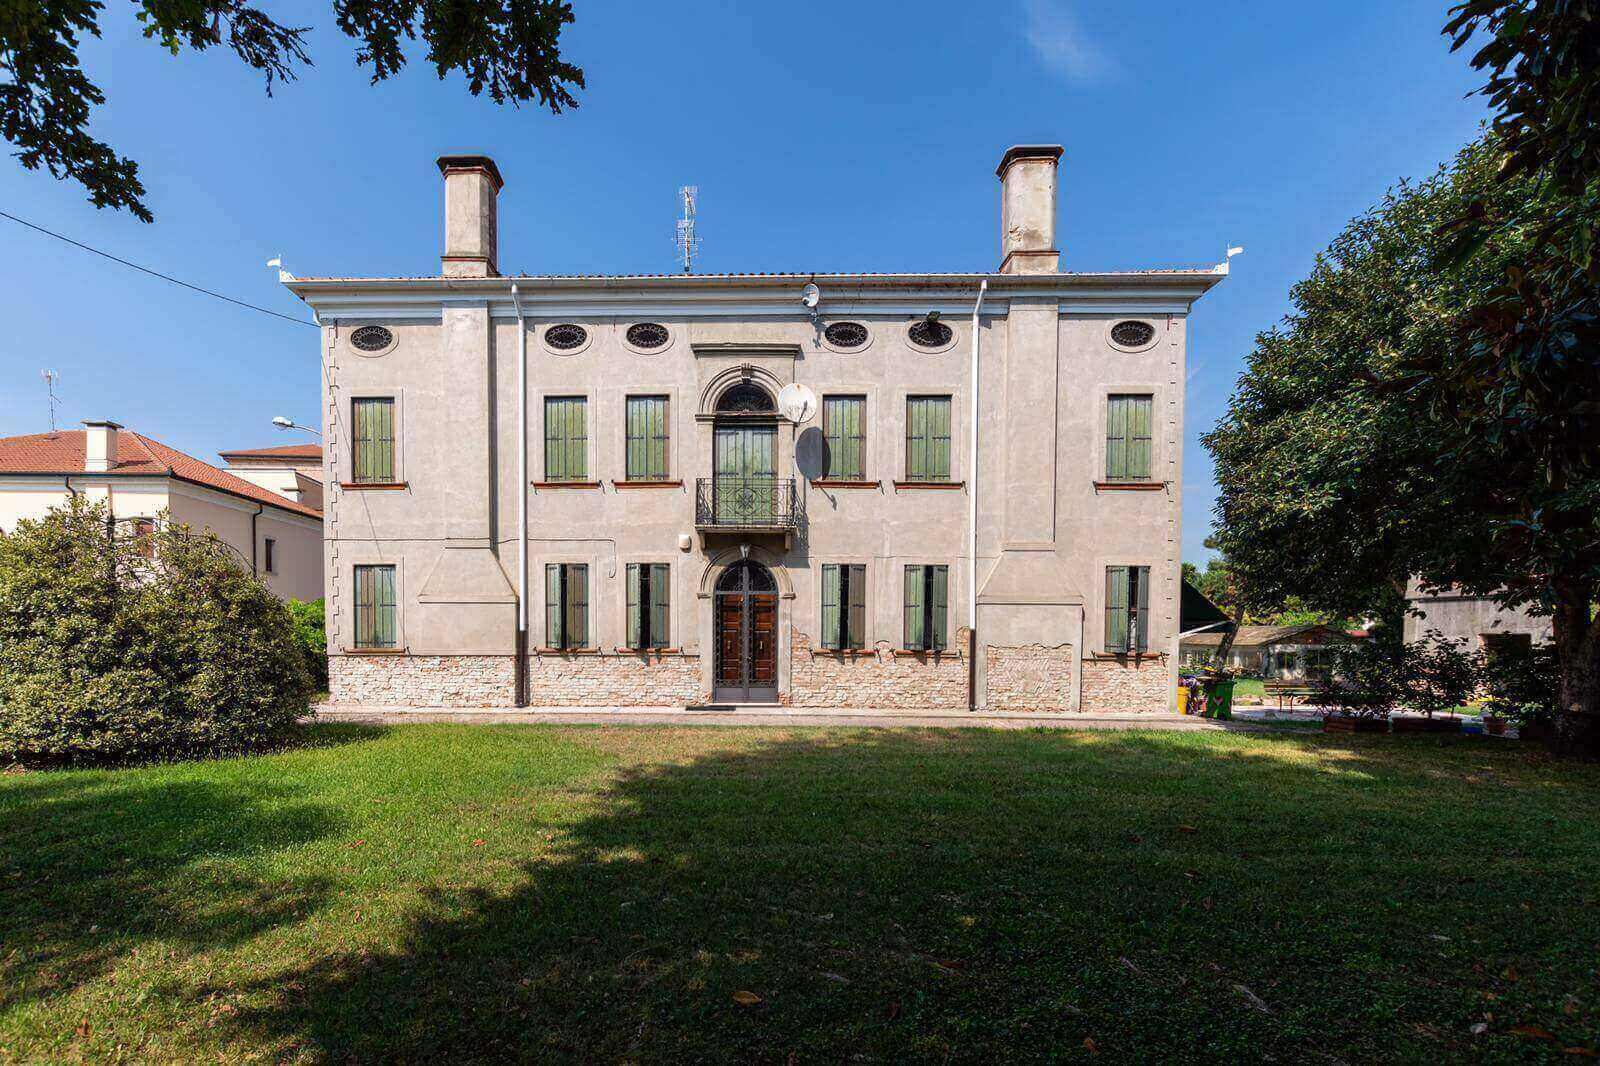 "<p><span style=""font-size:22px"">HISTORIC VILLA DATING BACK 1830</span><br />